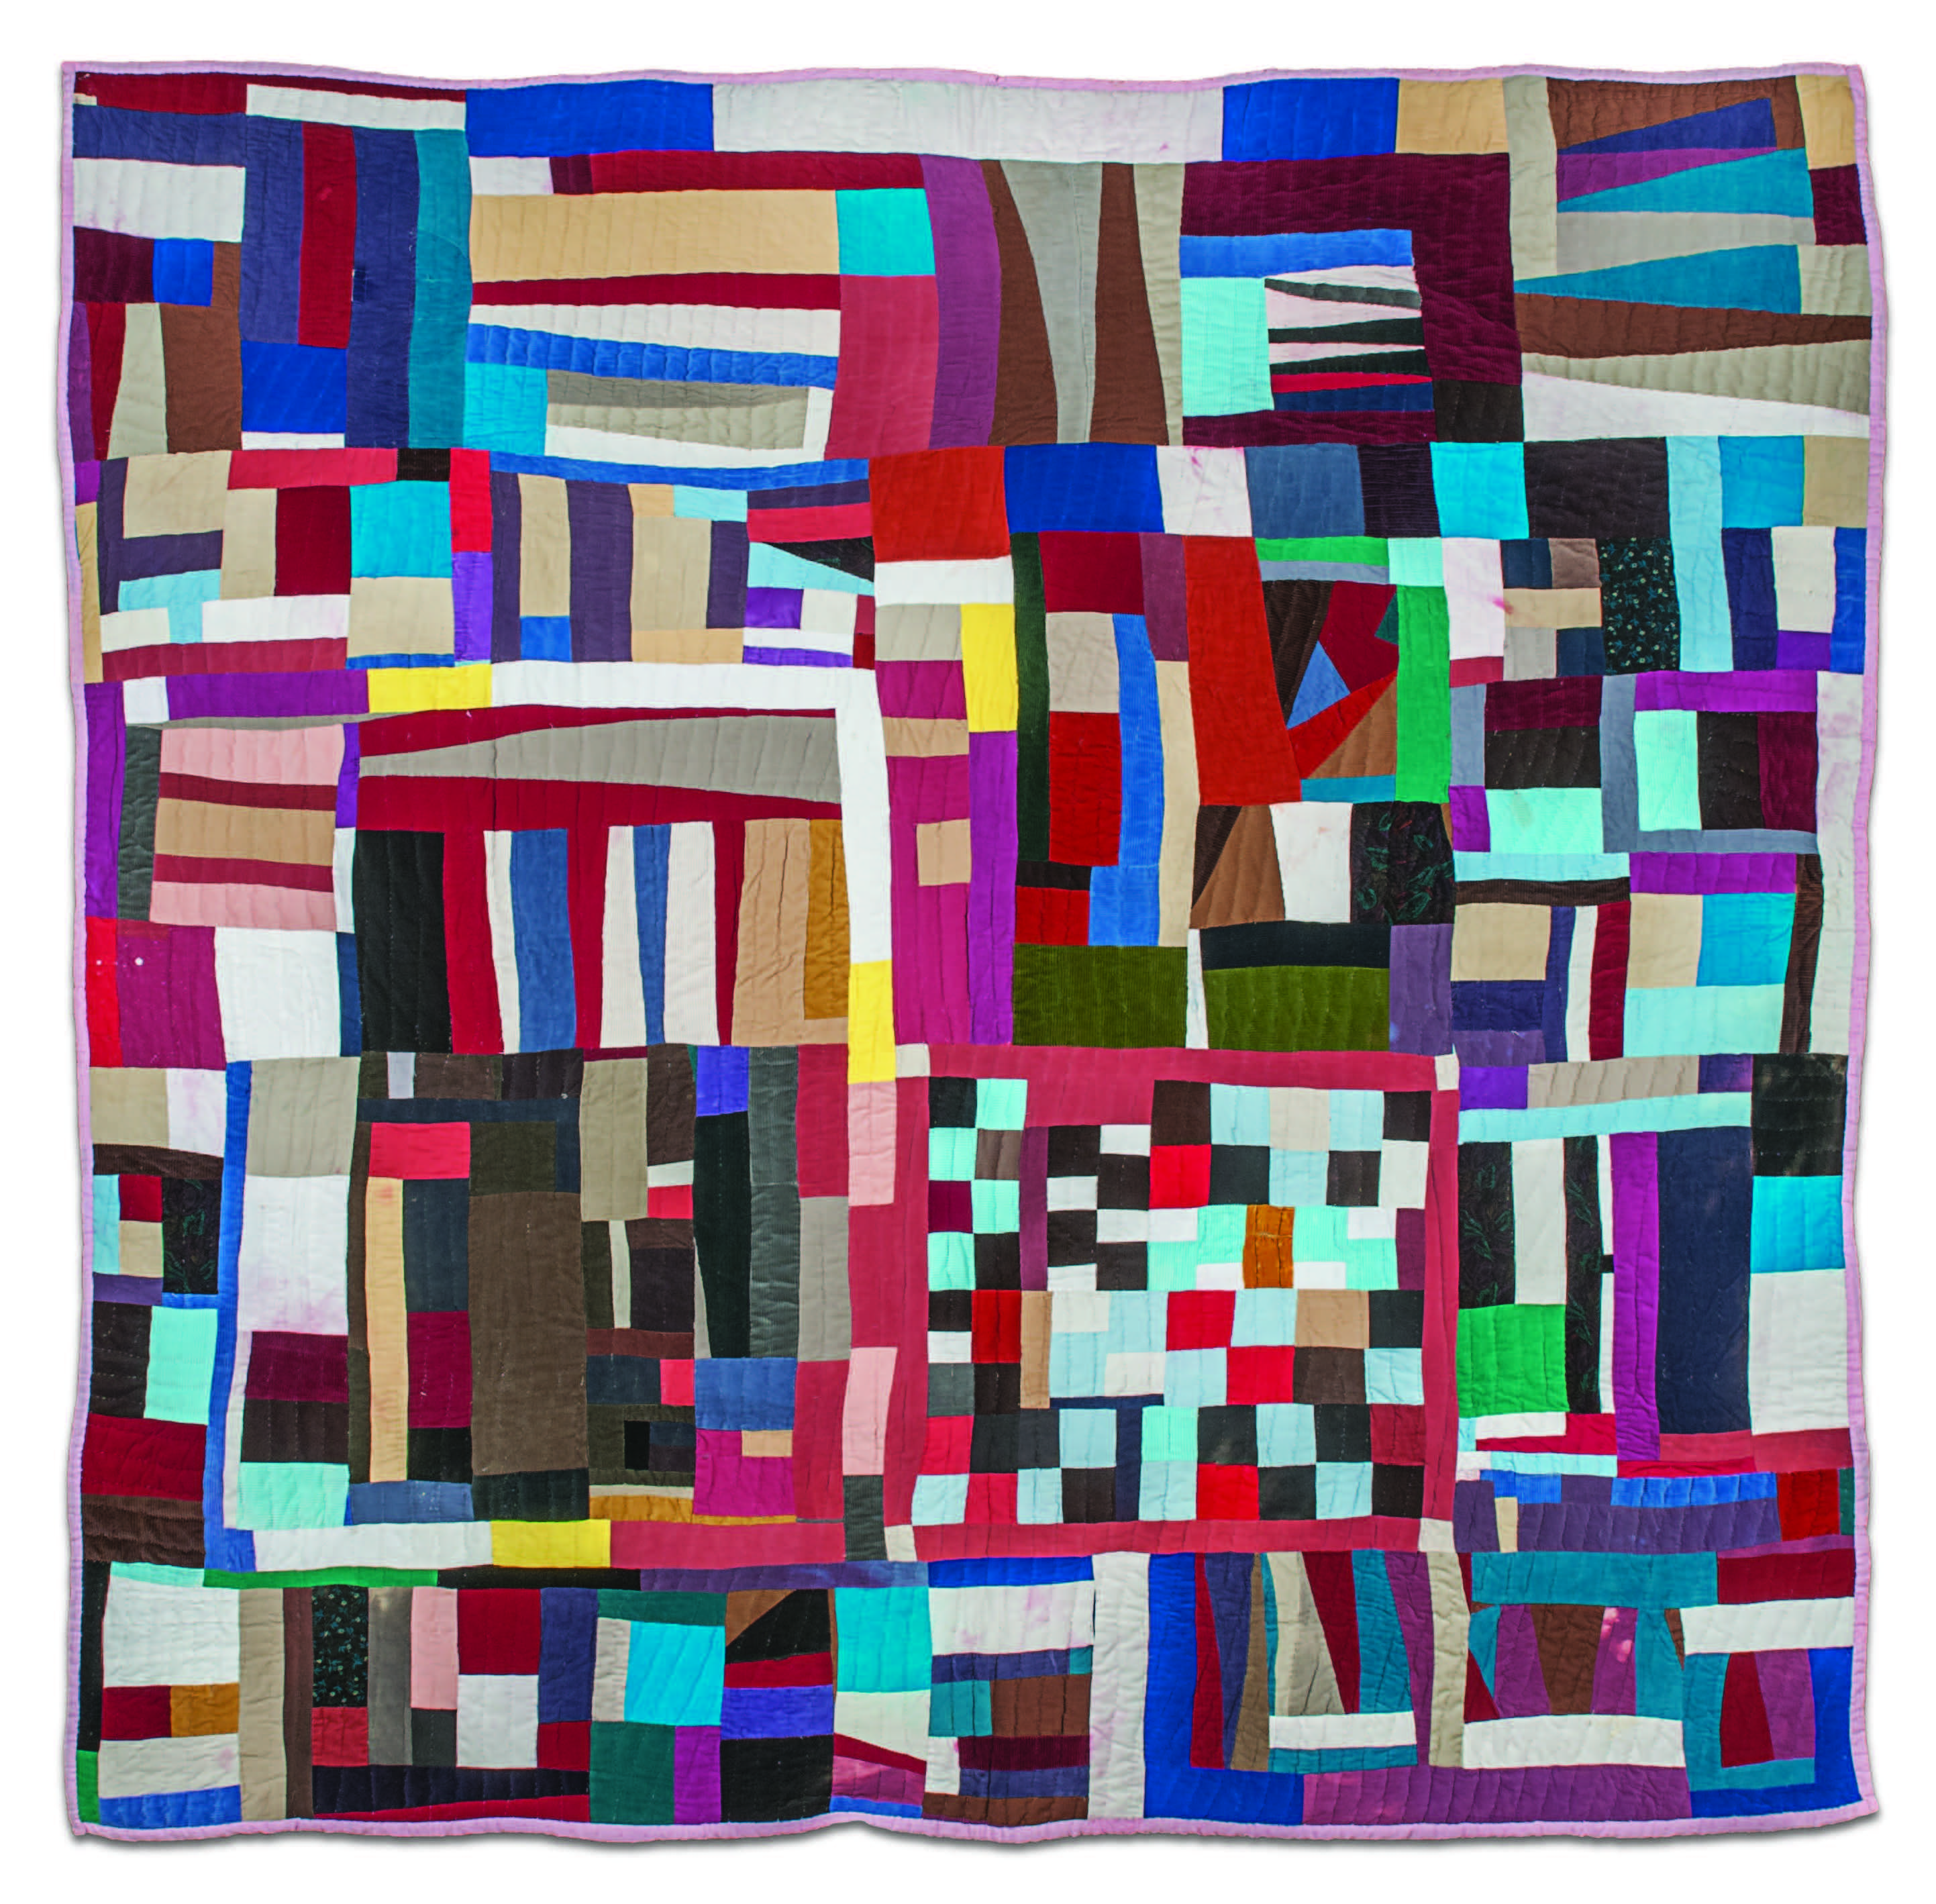 Mary Lee Bendolph, Blocked Out, 2009. Quilted fabric (corduroy, cotton, velvet), 86 × 85 inches. Museum of International Folk Art, IFAF Collection (FA.2014.60.1). Photograph by Blair Clark.